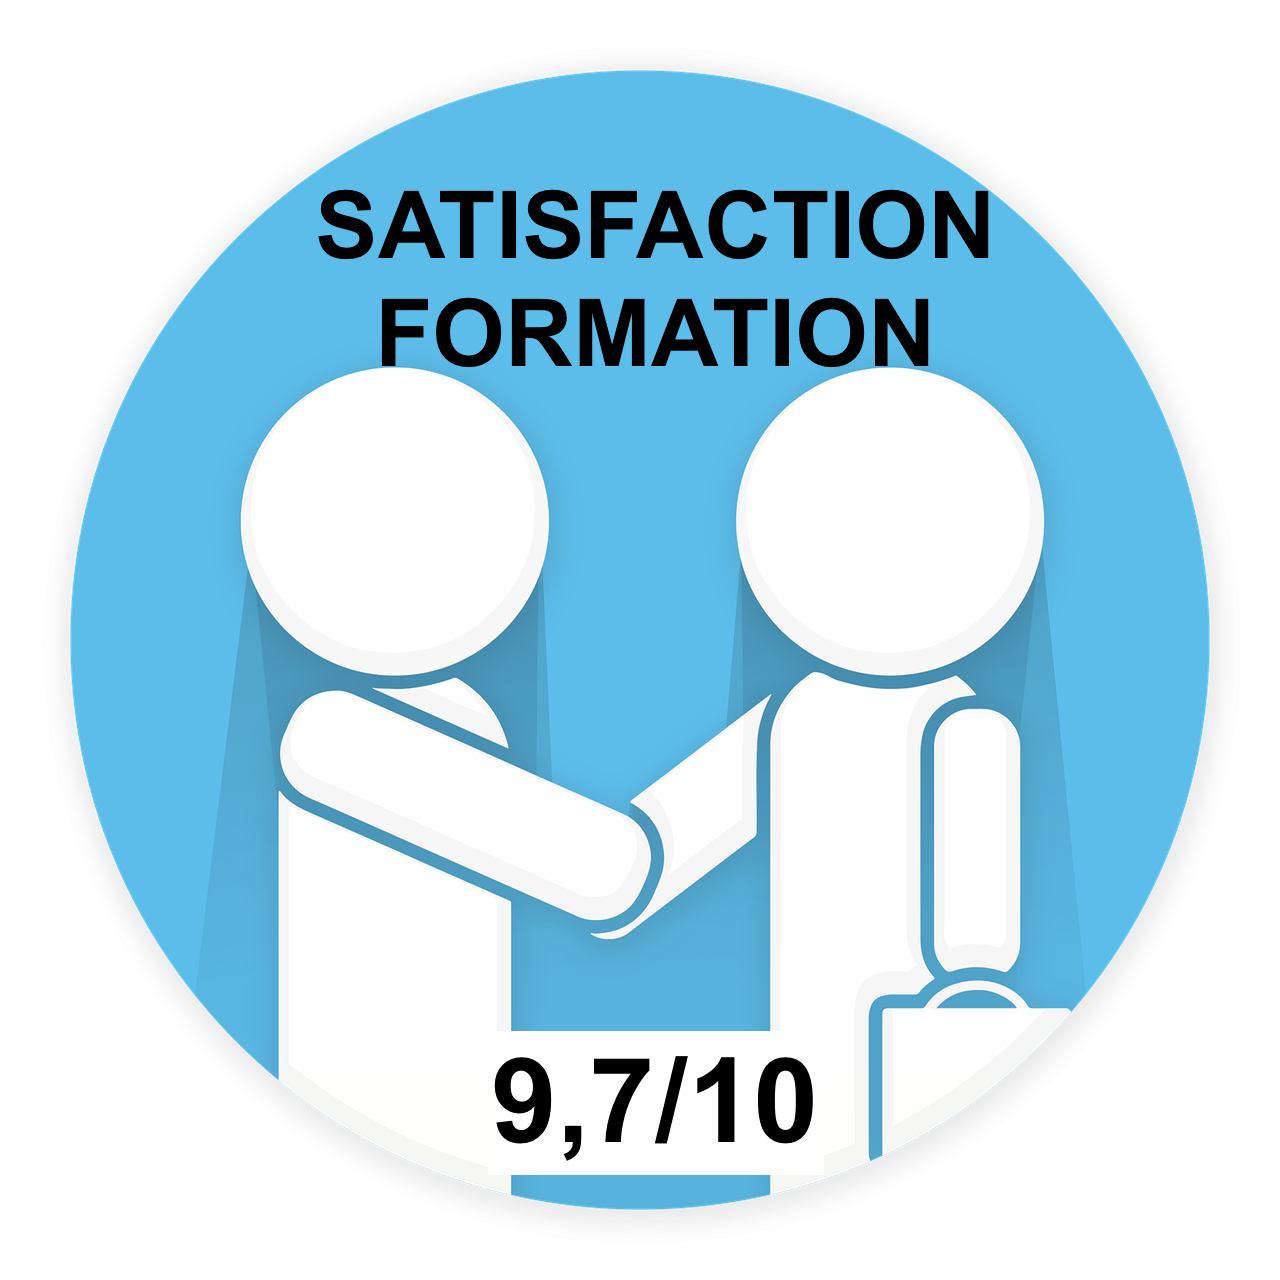 Satisfaction formation CLF